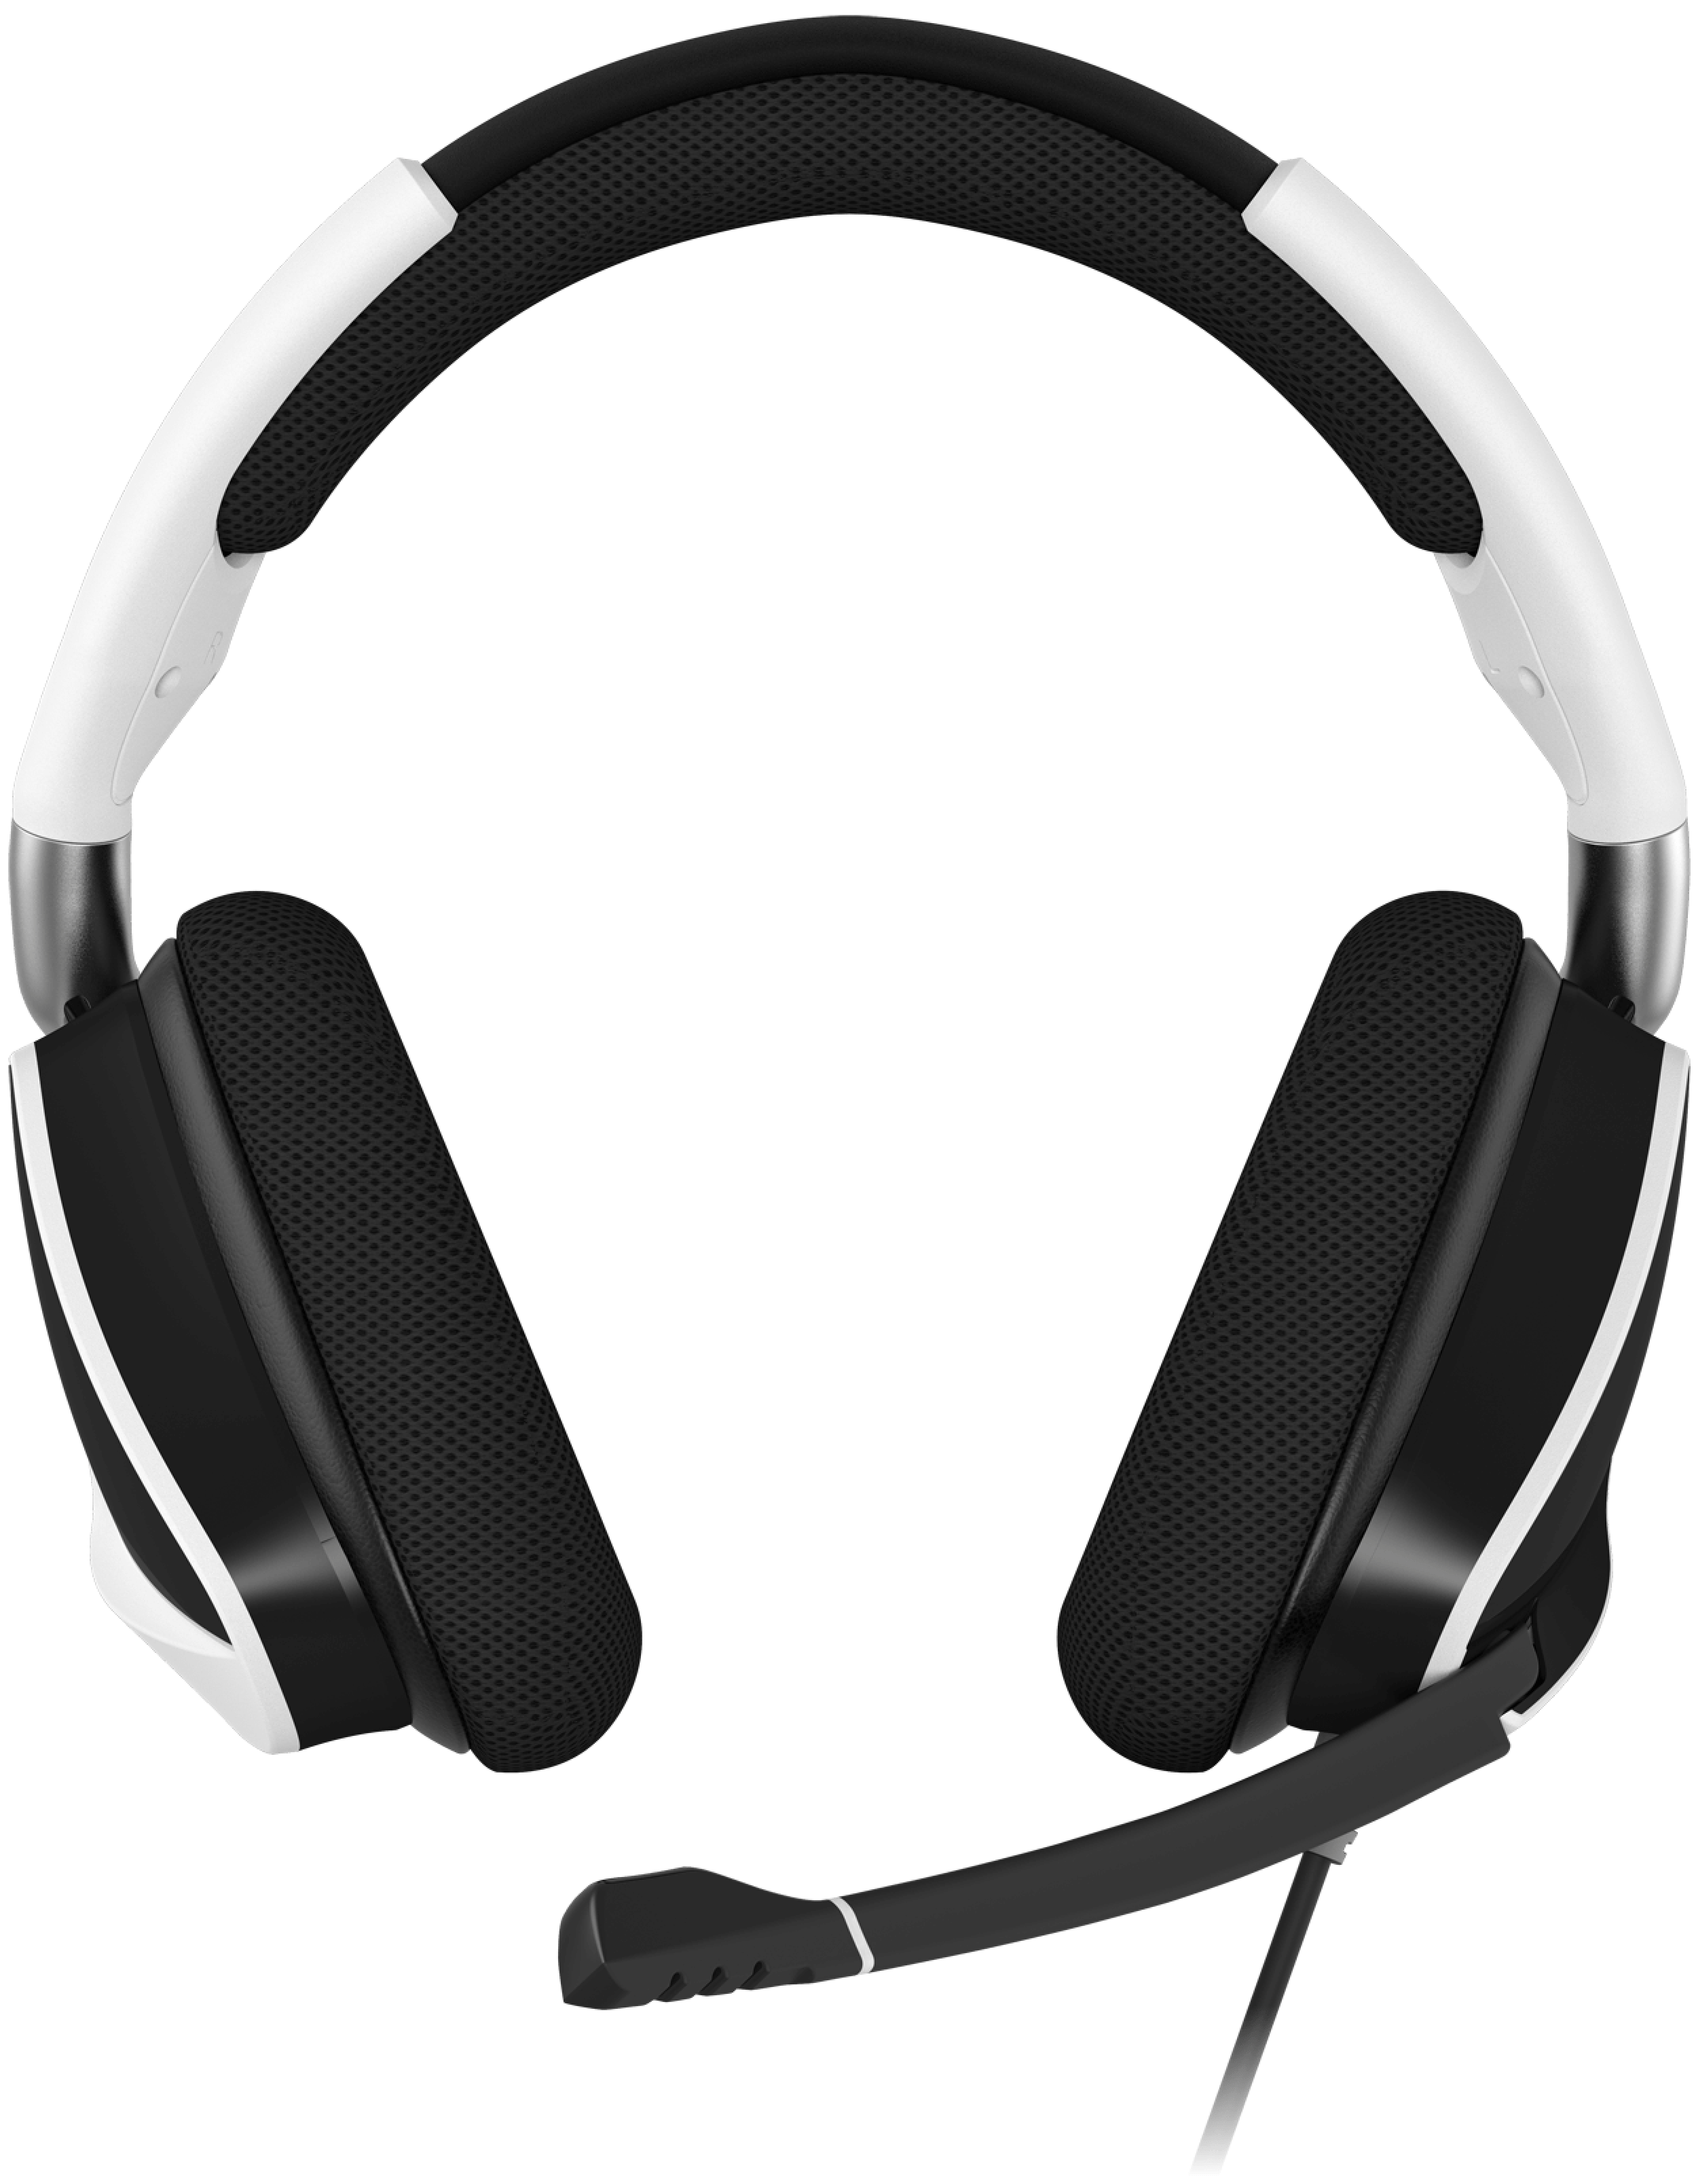 Void Elite Gaming Headset